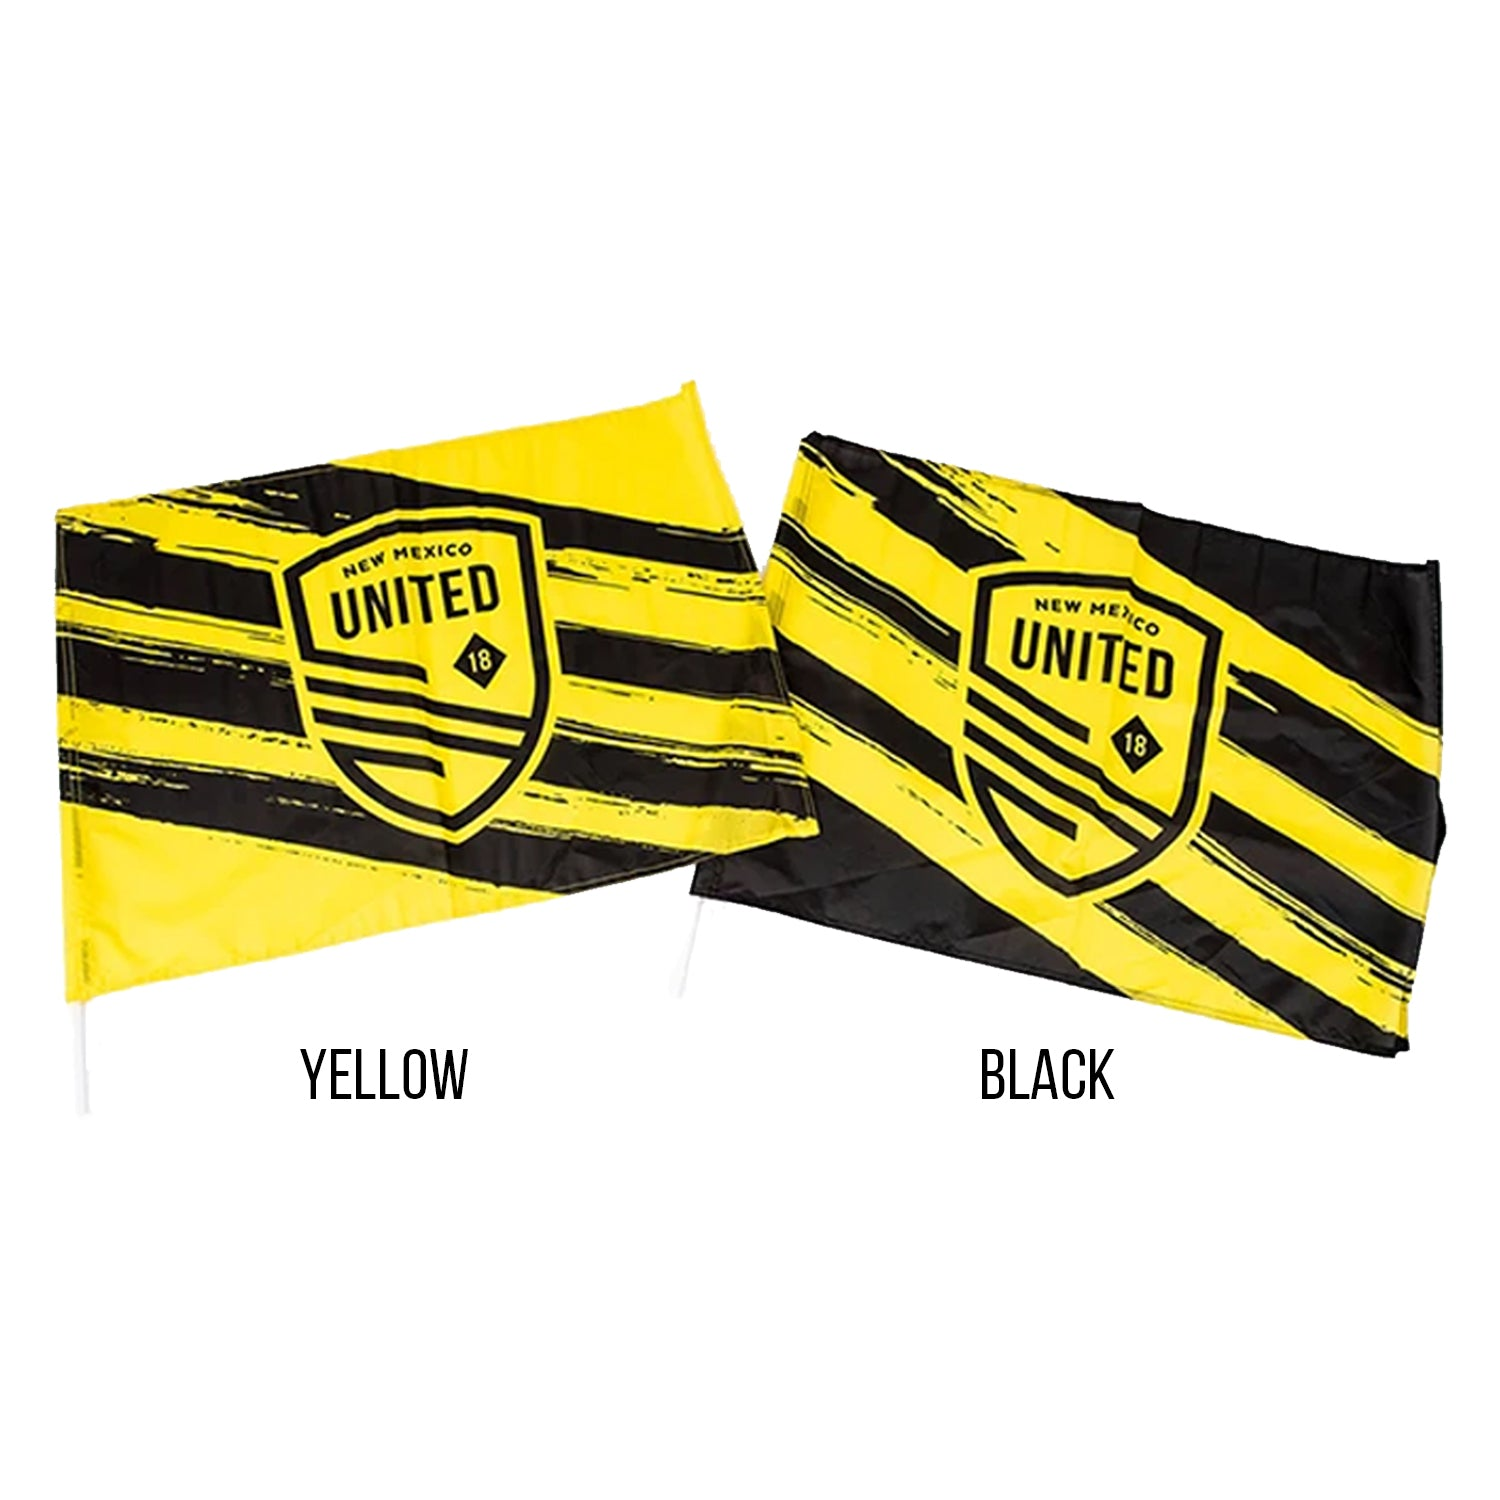 New Mexico United Official Handheld Flag